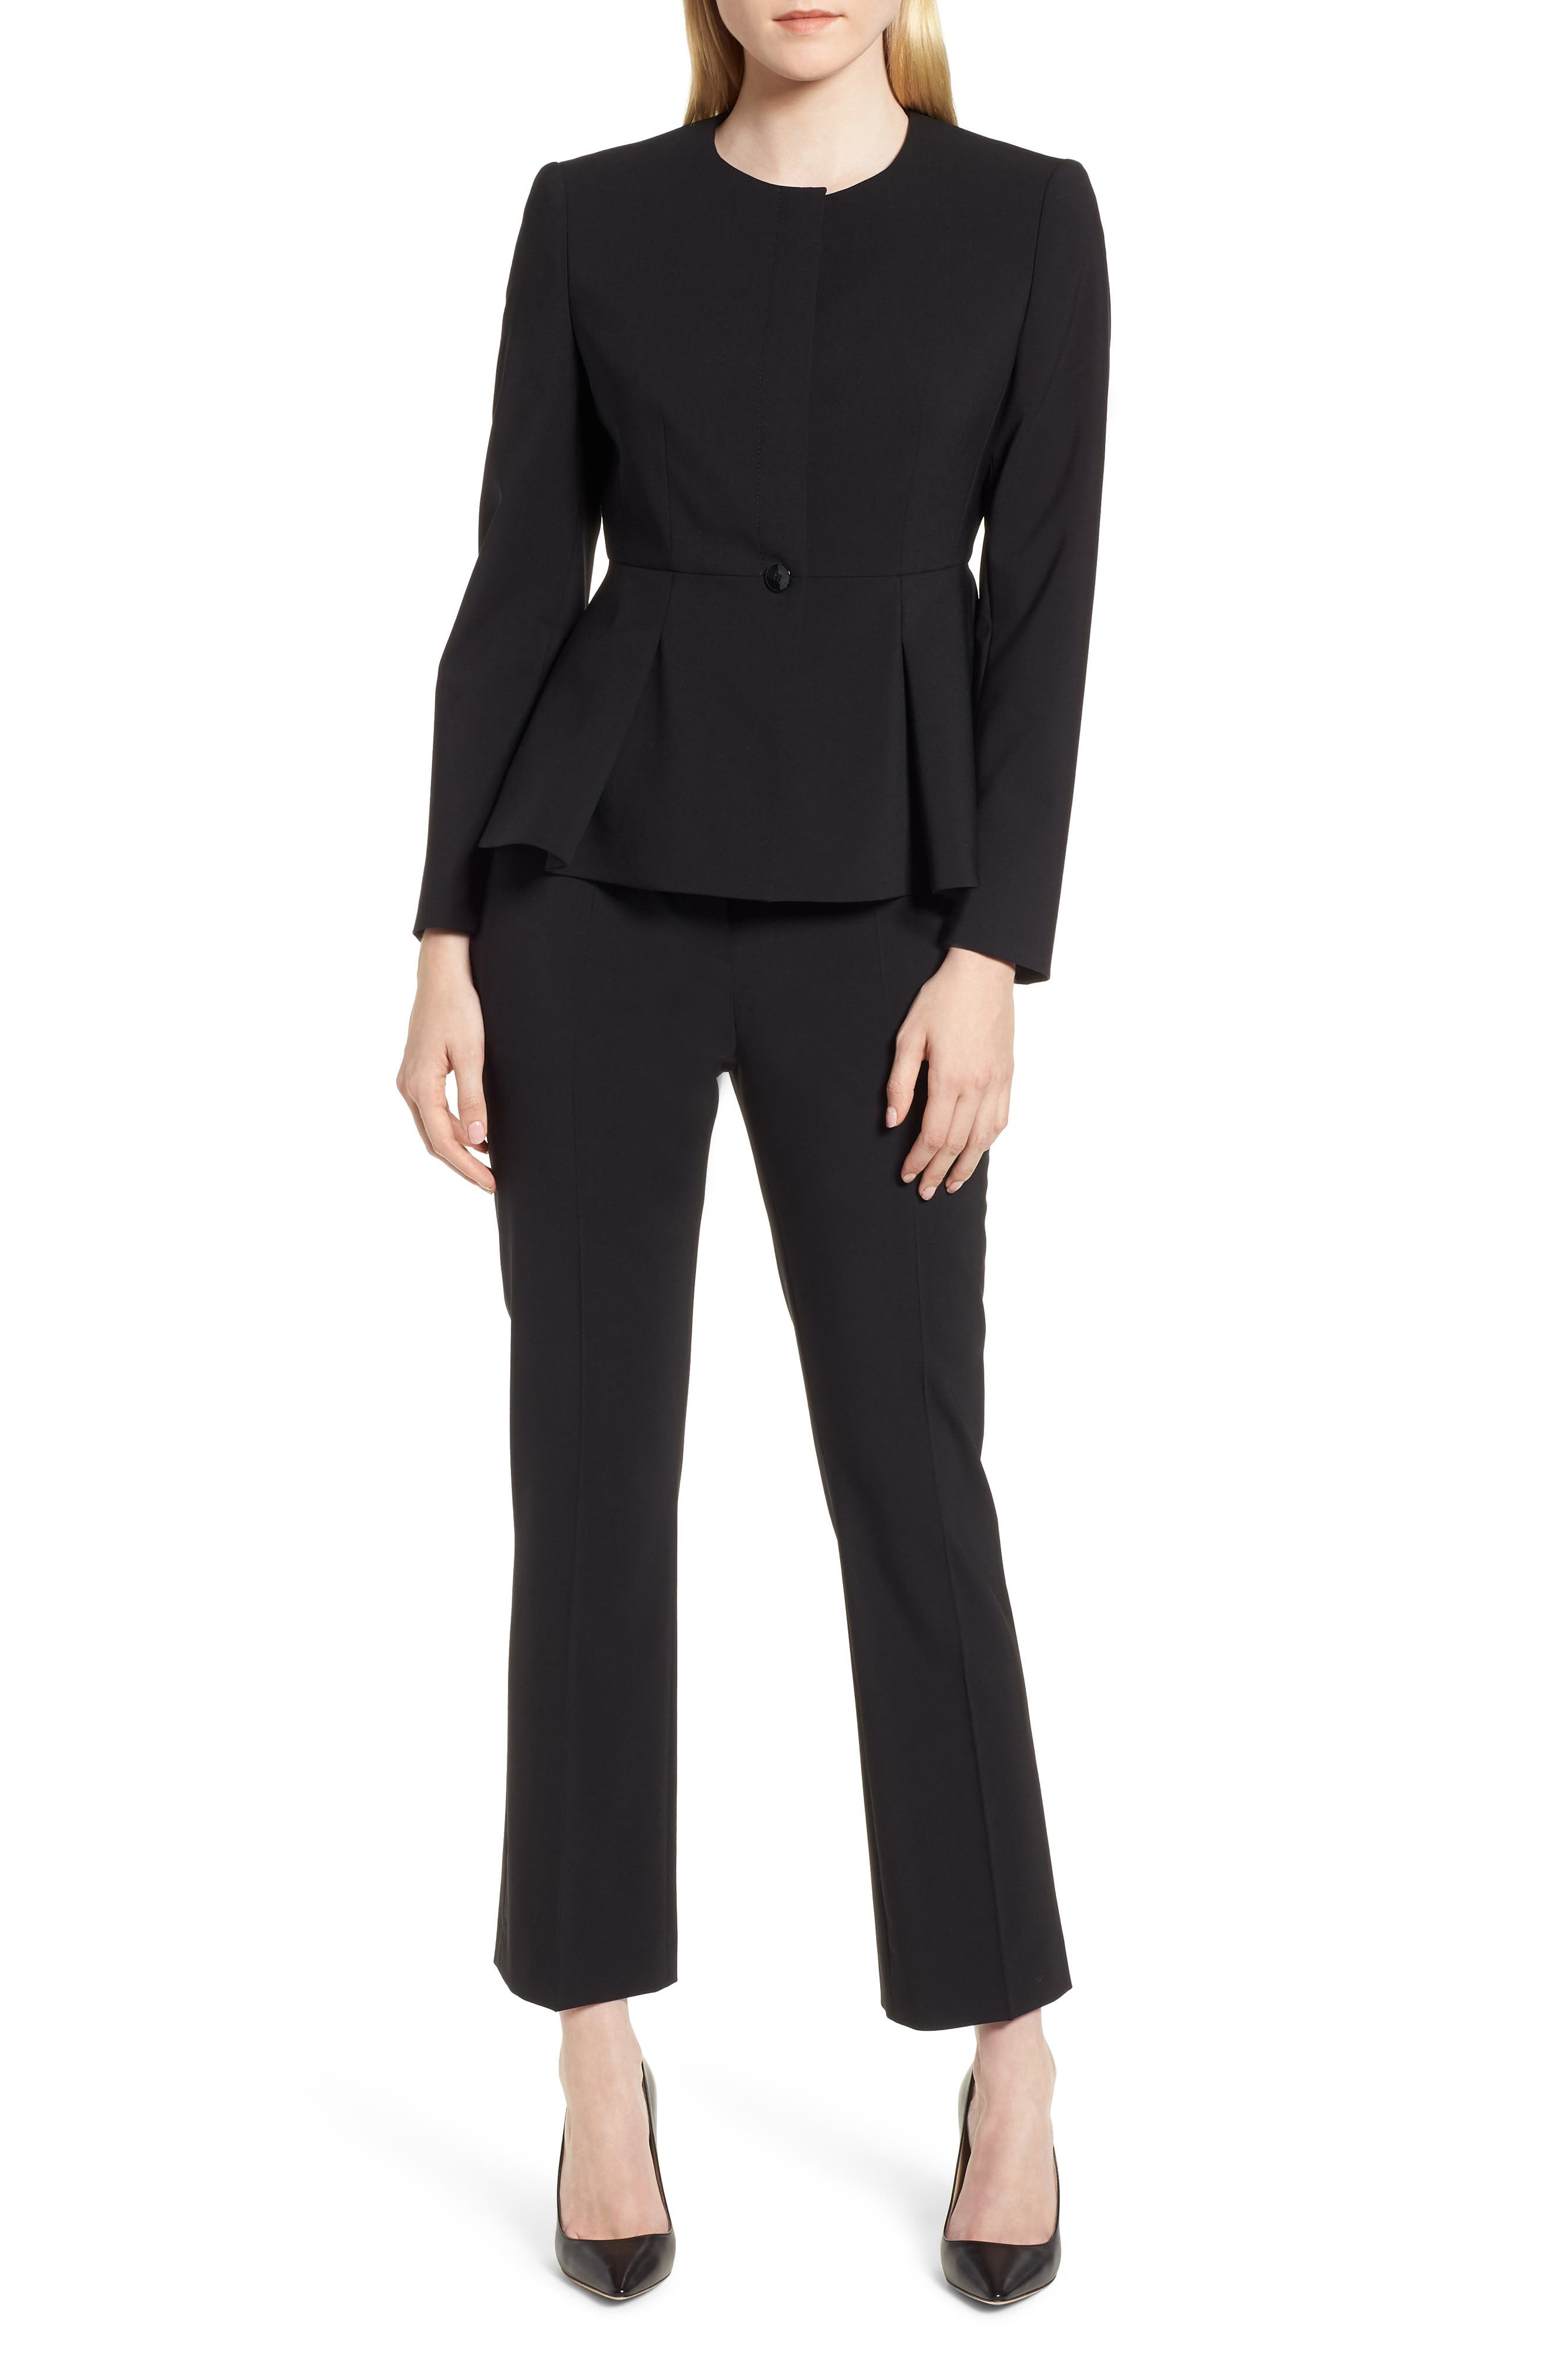 Talenara Tropical Stretch Wool Ankle Trousers,                             Alternate thumbnail 7, color,                             Black